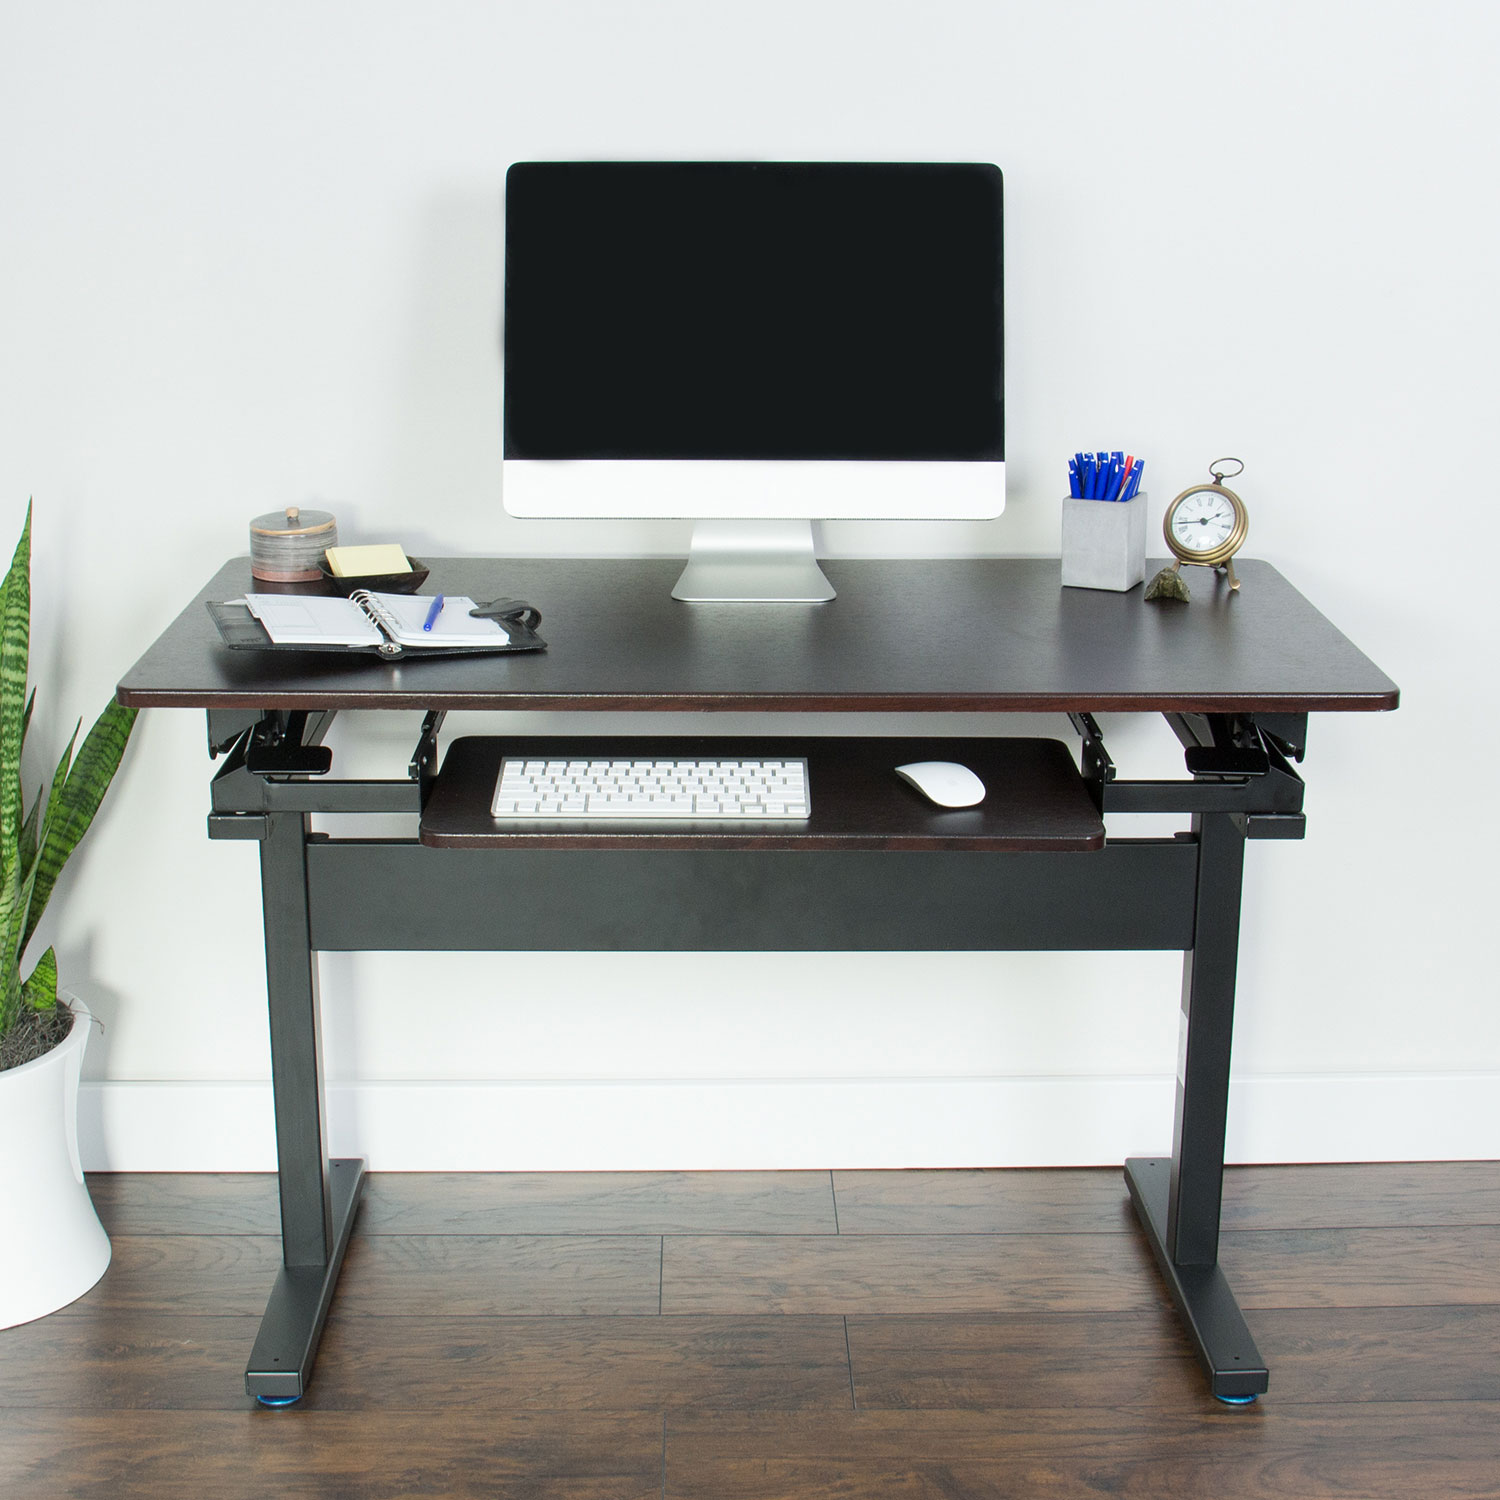 xec-FIT Full Size Hydraulic Adjustable Sit to Stand Up Workstation Standing Desk